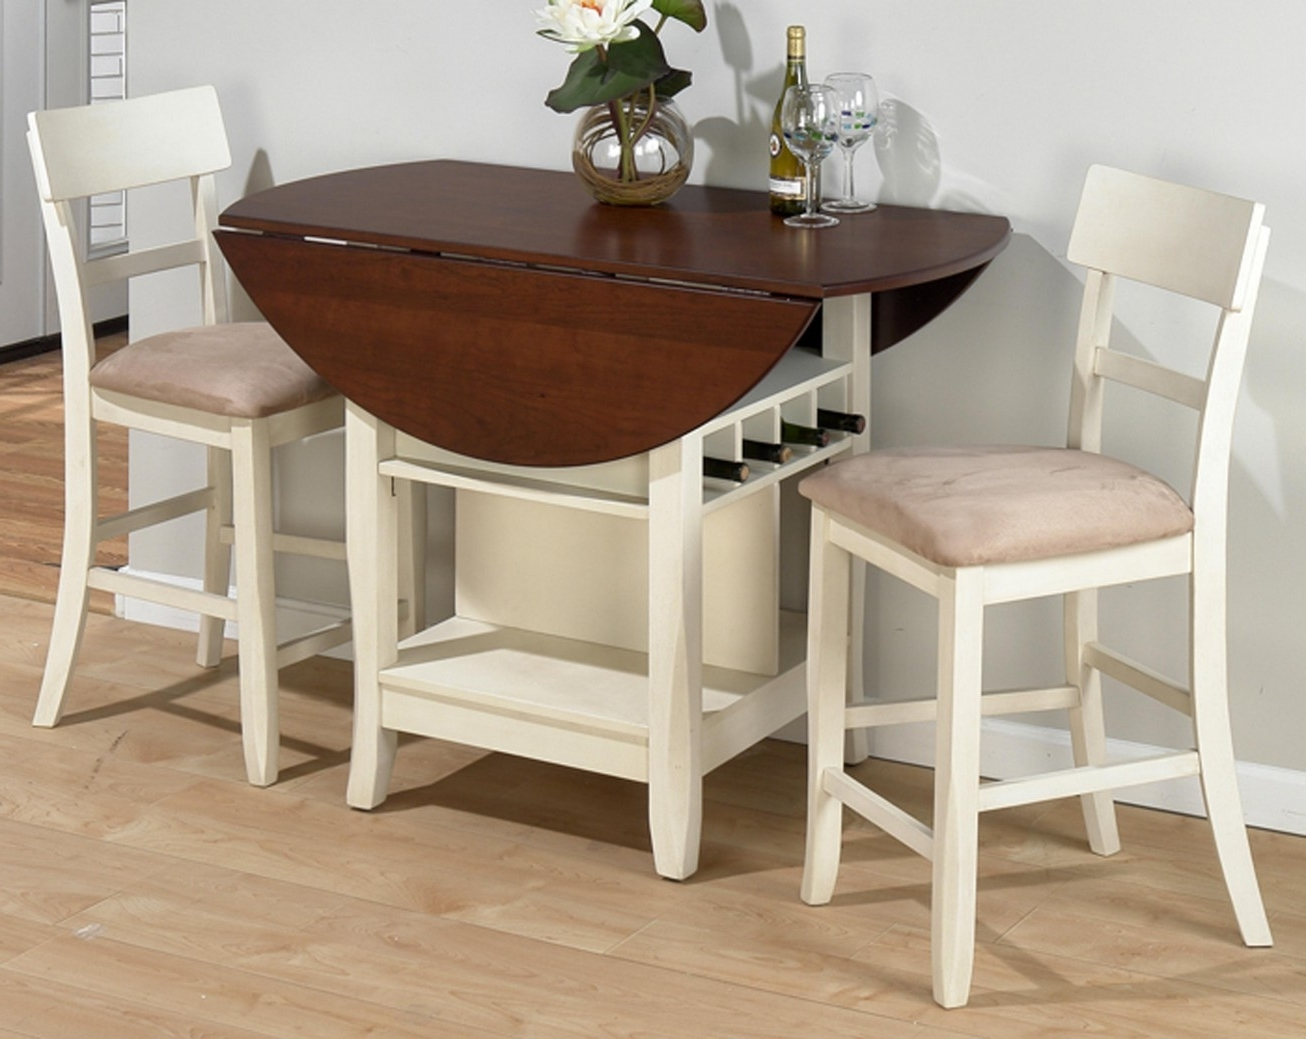 Small Dining Tables For 2 Regarding Most Recently Released Ikea Dining Table Set Small Eat In Kitchen Ideas 2 Seater For Sale (View 18 of 25)